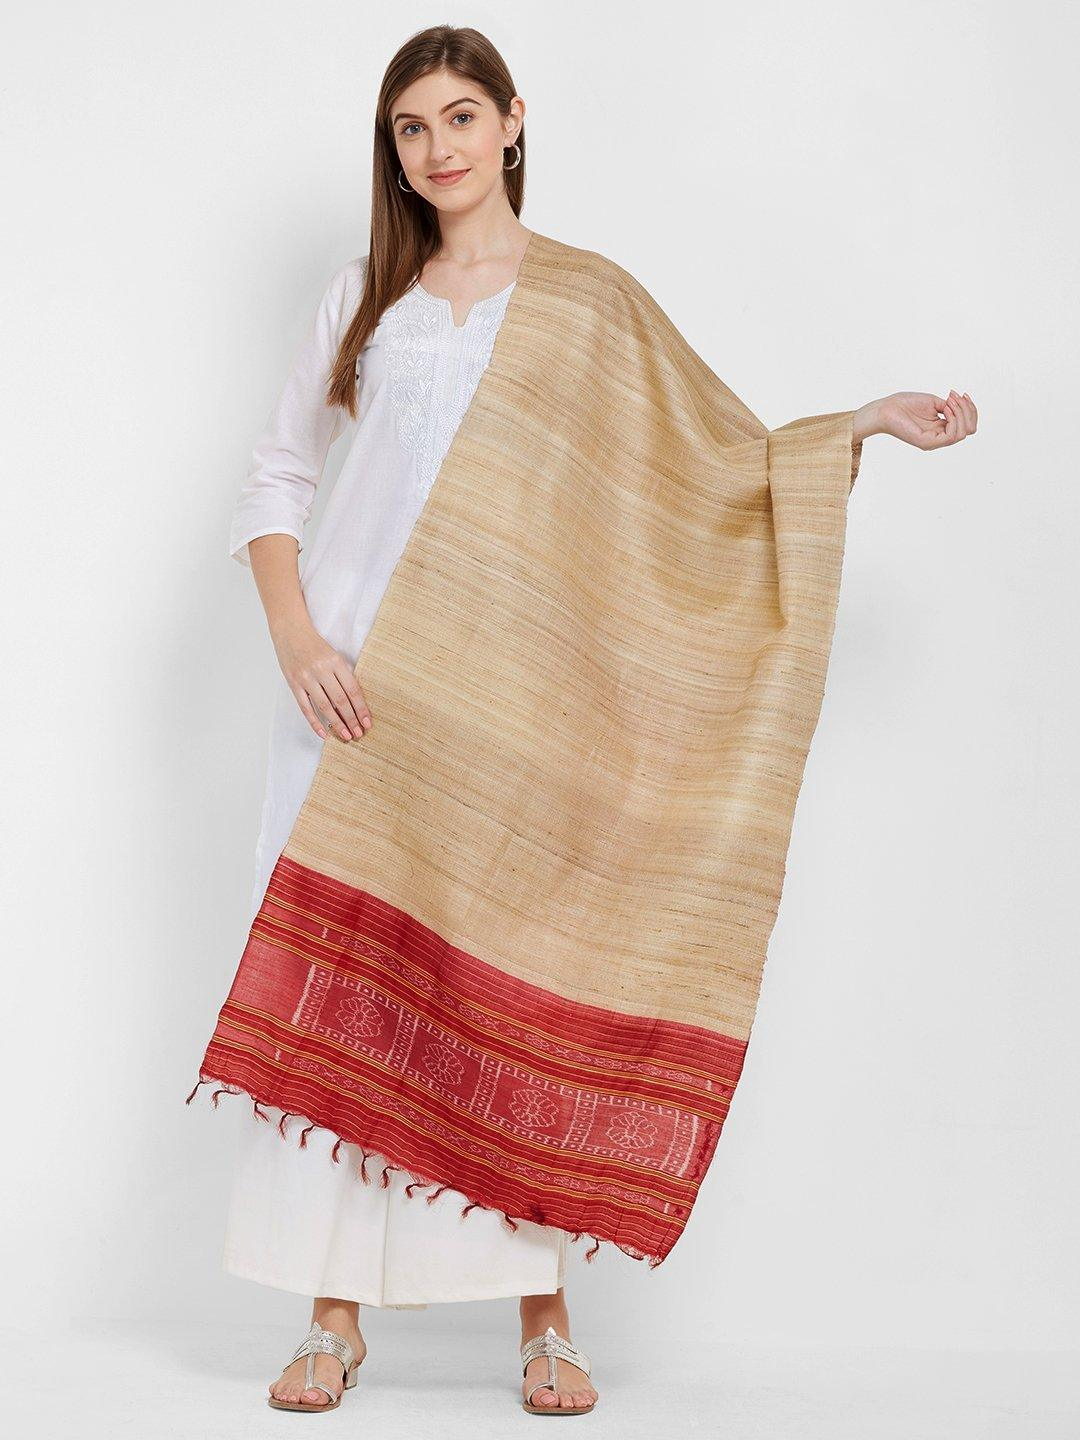 CraftsCollection.in -Beige and Red Tussar Silk Sambalpuri Stole